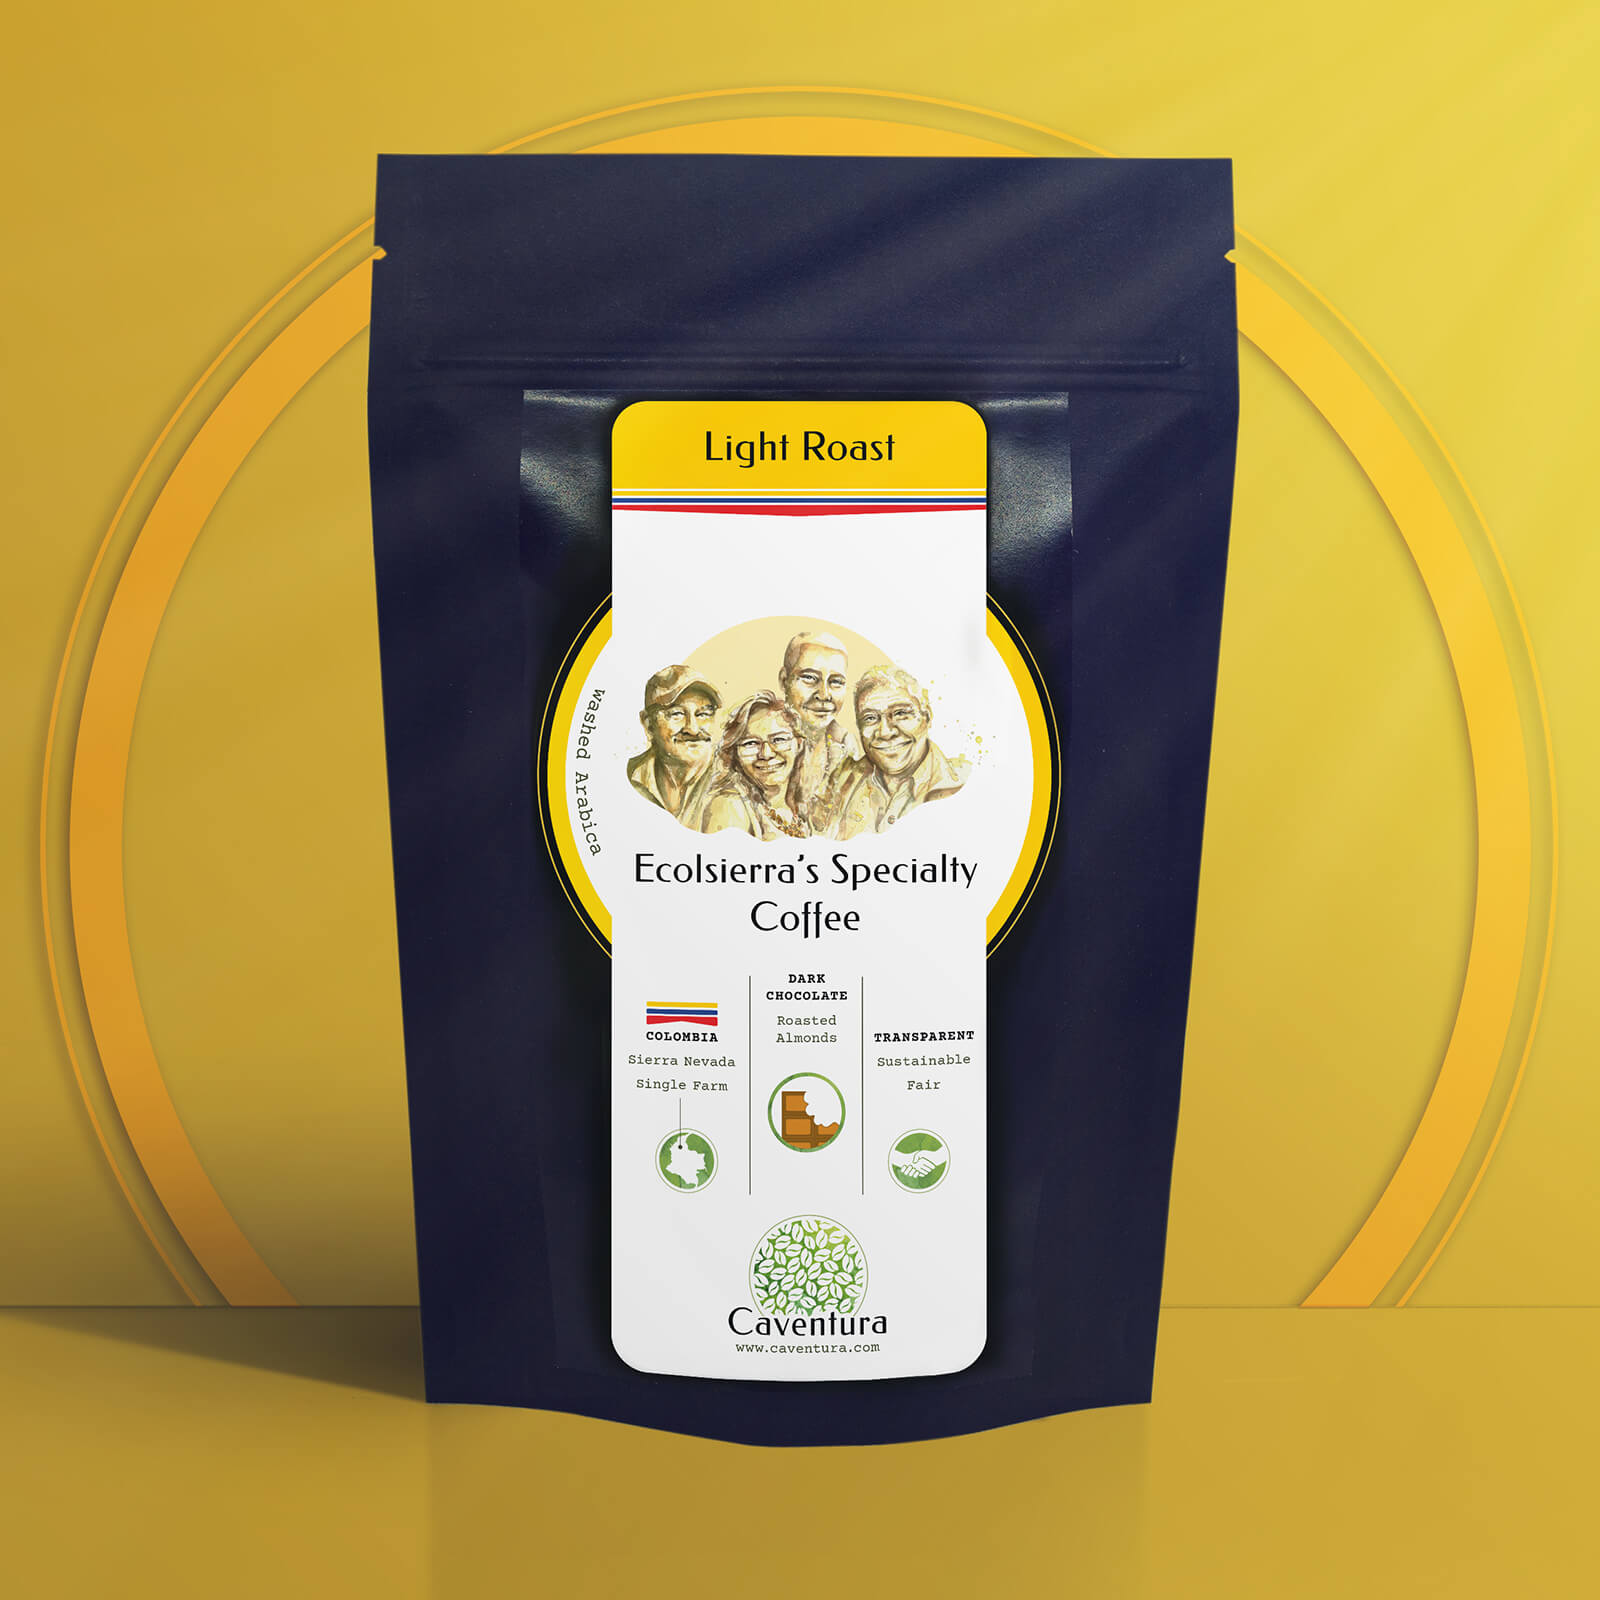 Ecolsierra's Specialty Coffee – Light Roast